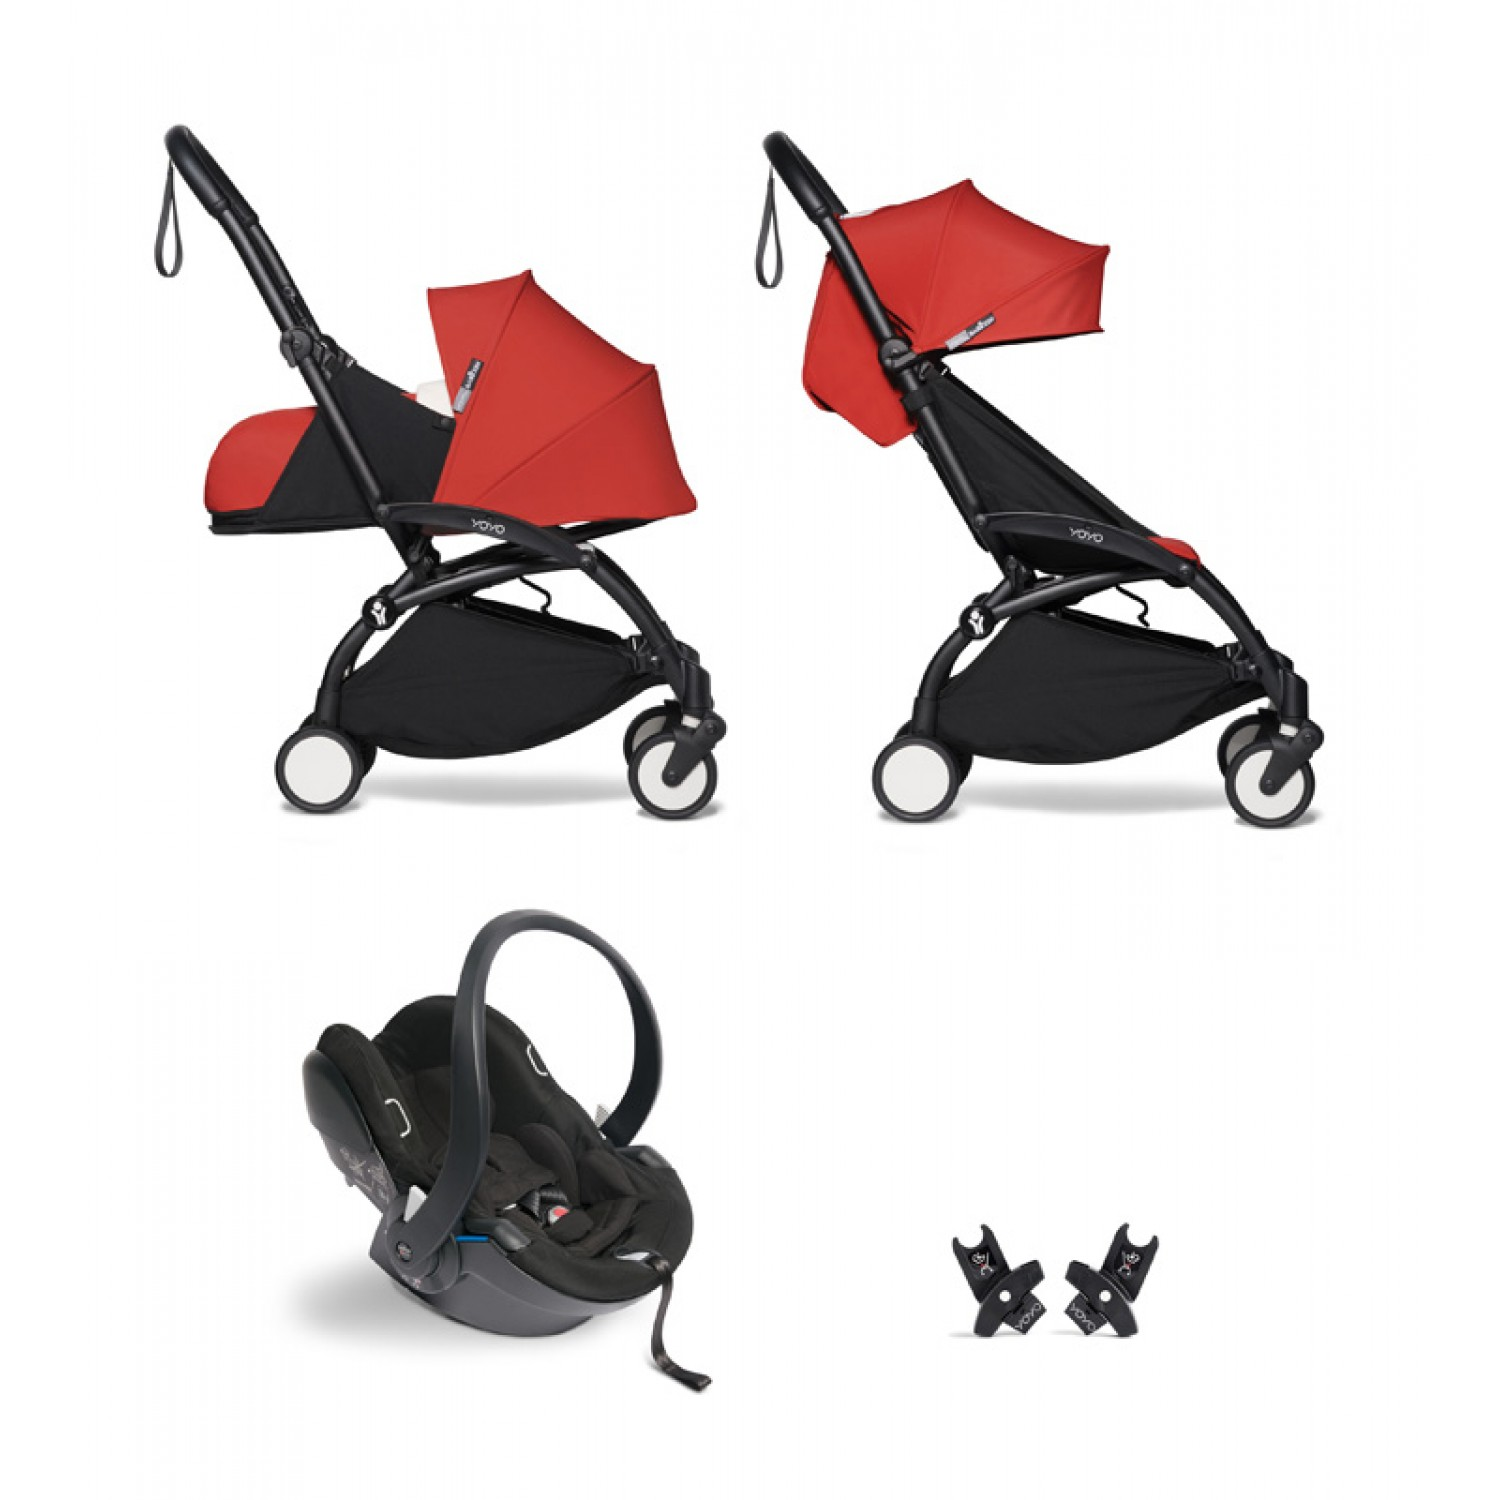 All-in-one BABYZEN stroller YOYO2 0+, car seat and 6+  | Black Chassis Red